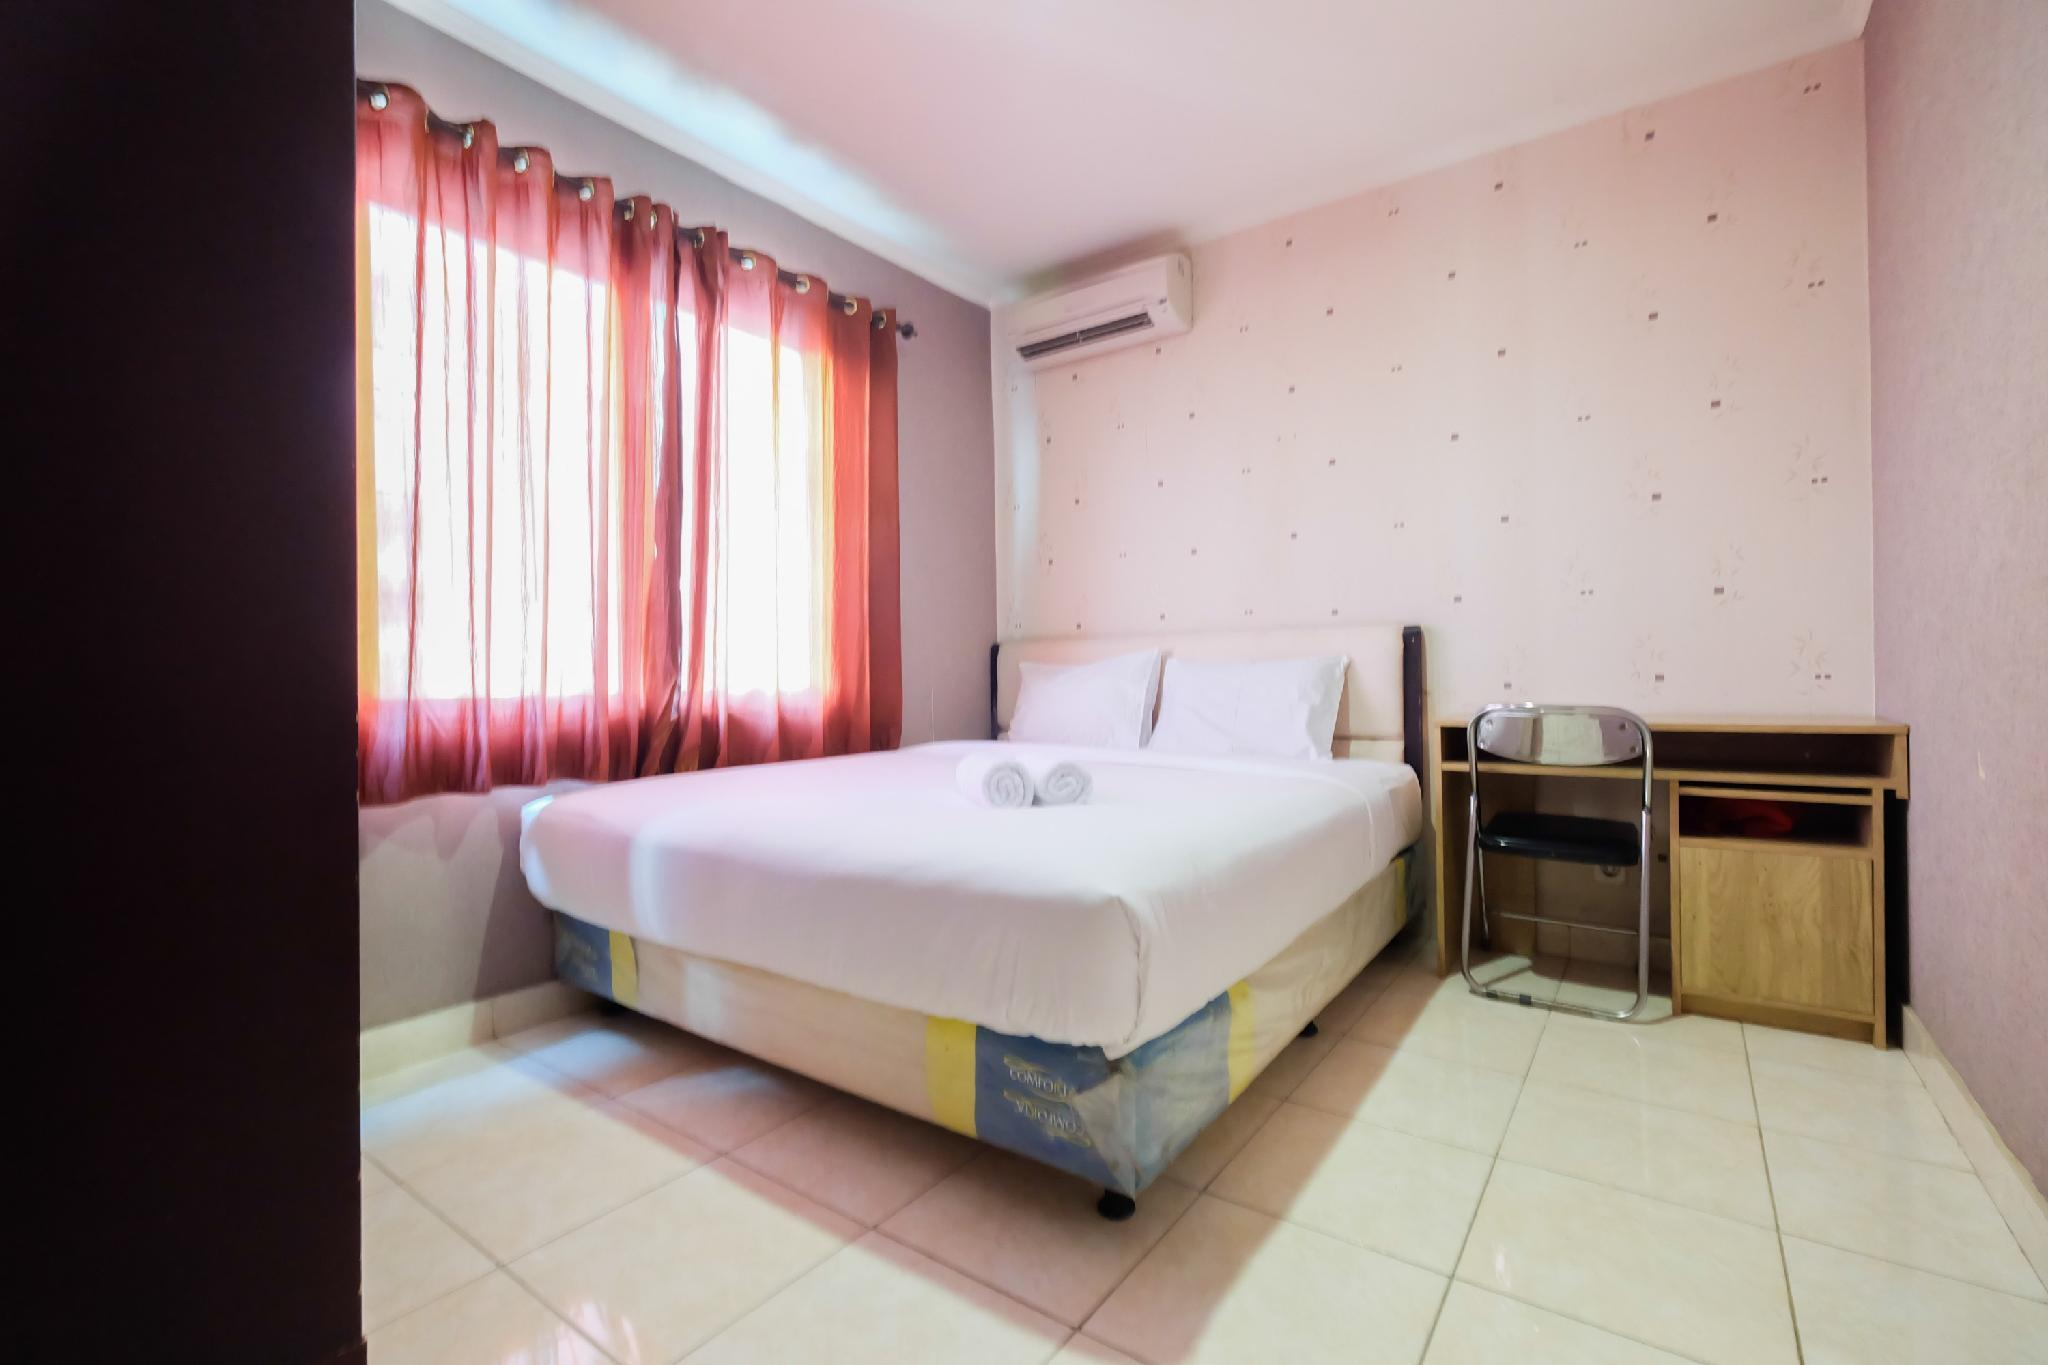 Modern 2BR At City Home Apt Near MOI By Travelio